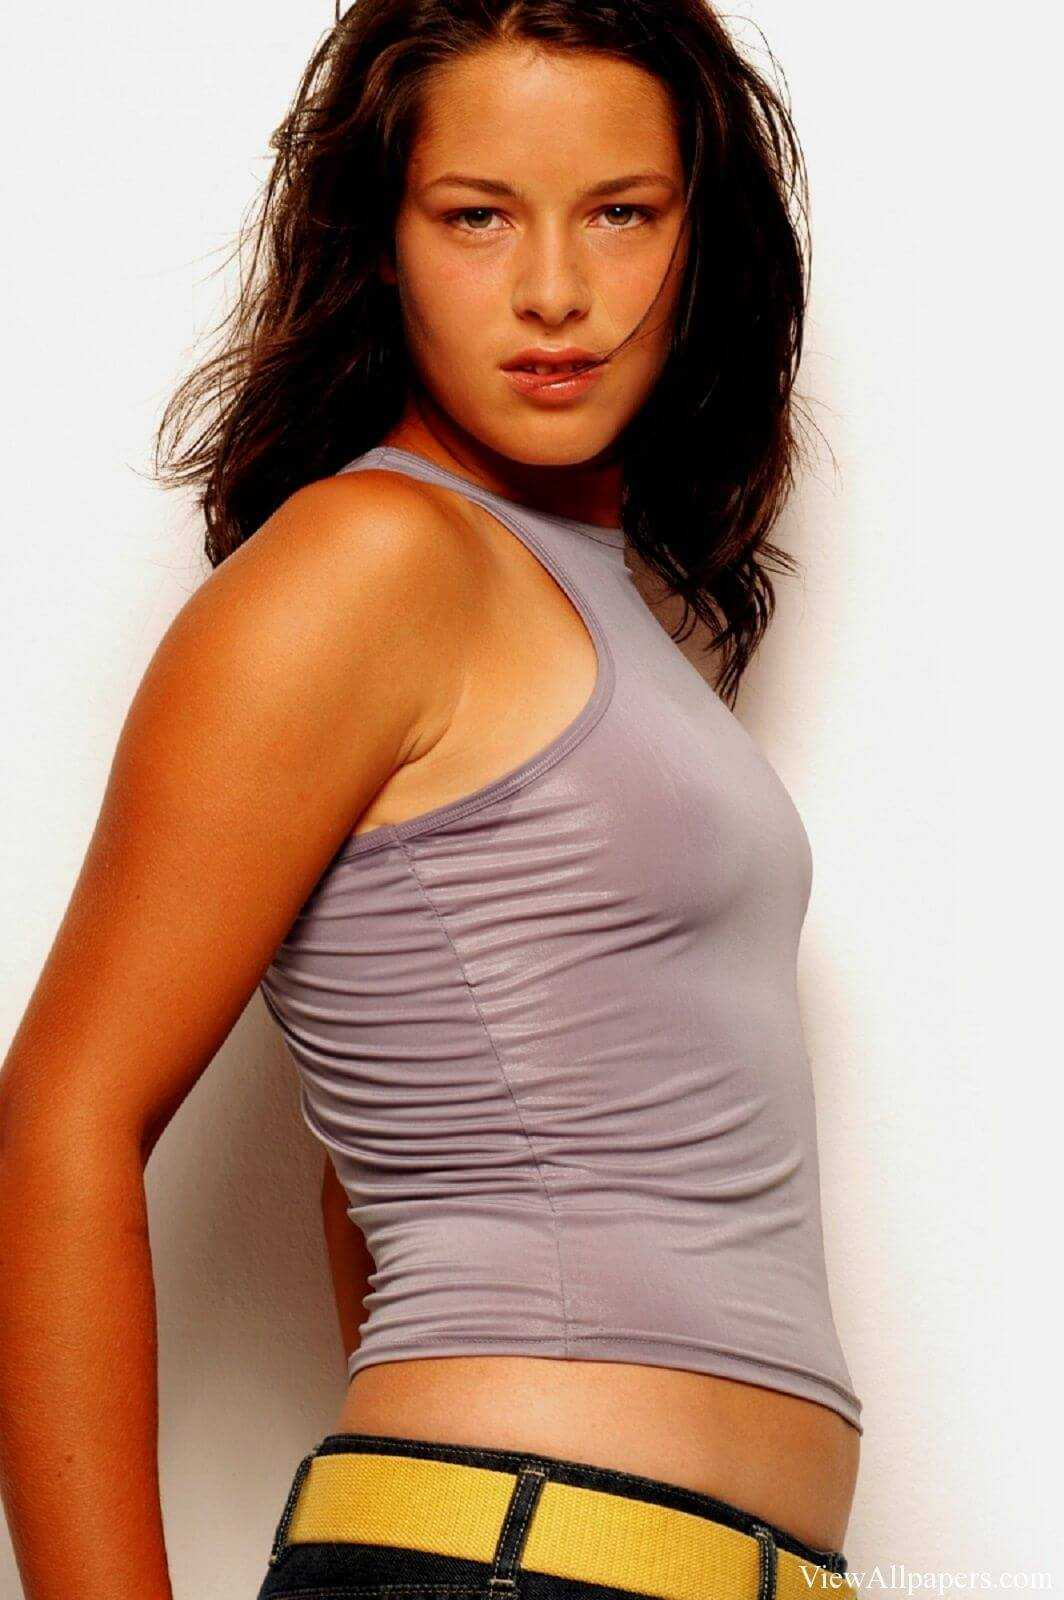 49 Nude Pictures Of Ana Ivanovic Exhibit Her As A Skilled